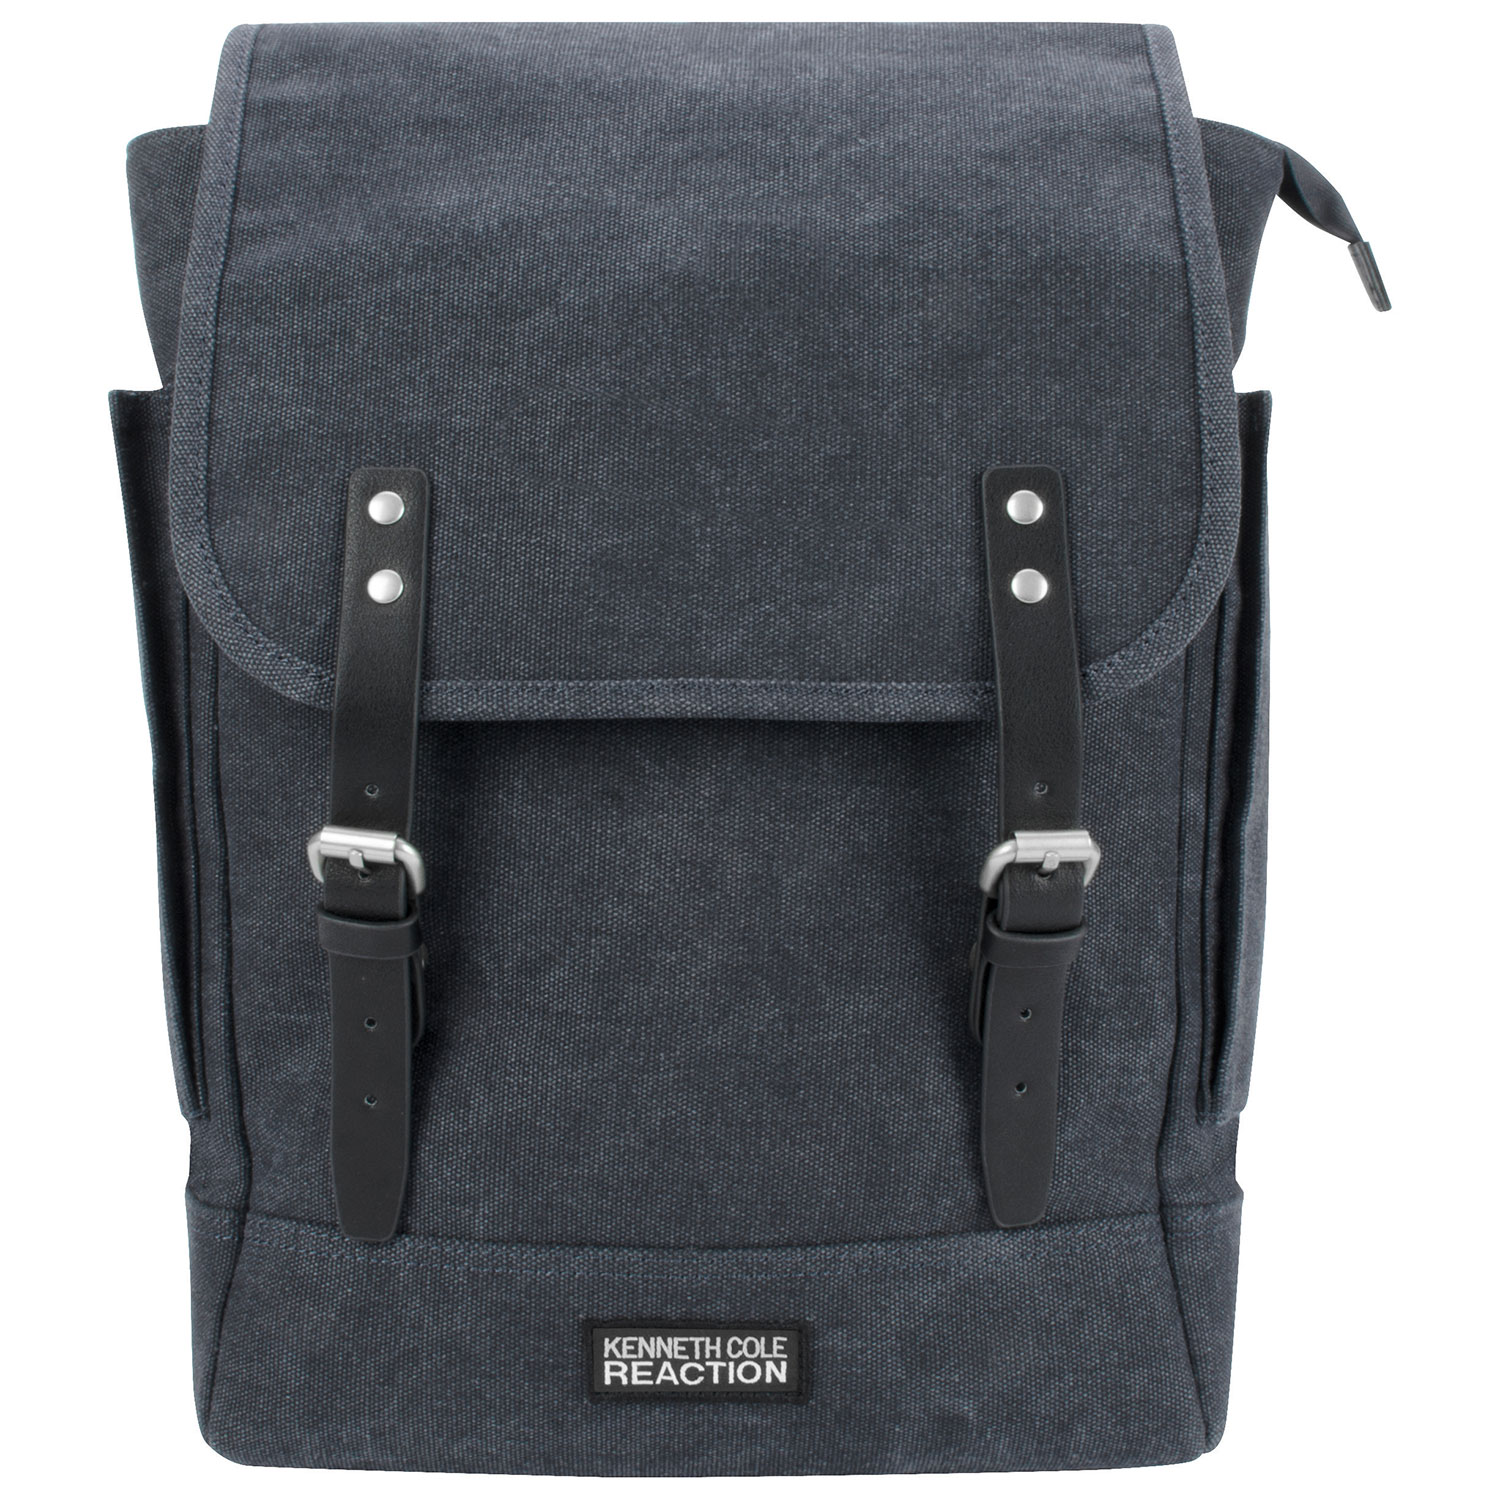 Laptop Bags Best Buy Canada - Kenneth cole daytripper 14 1 laptop backpack navy